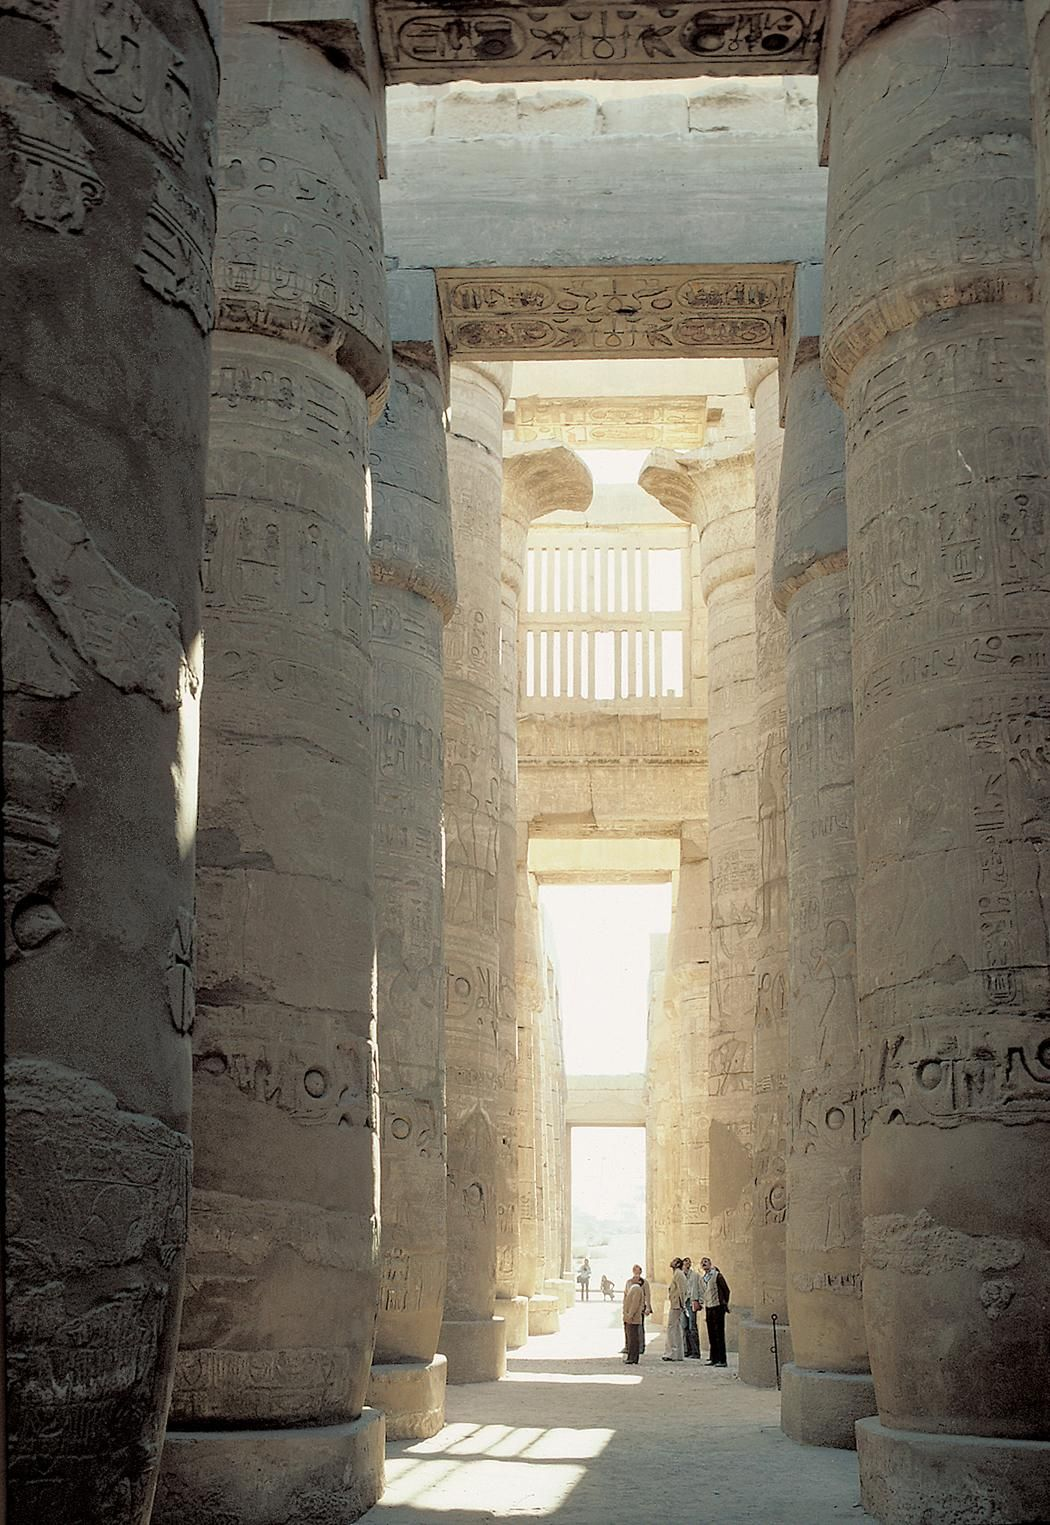 Amun Re Photographic Arts: Temple Of Amun-Re And Hypostyle Hall. Karnak, Near Luxor